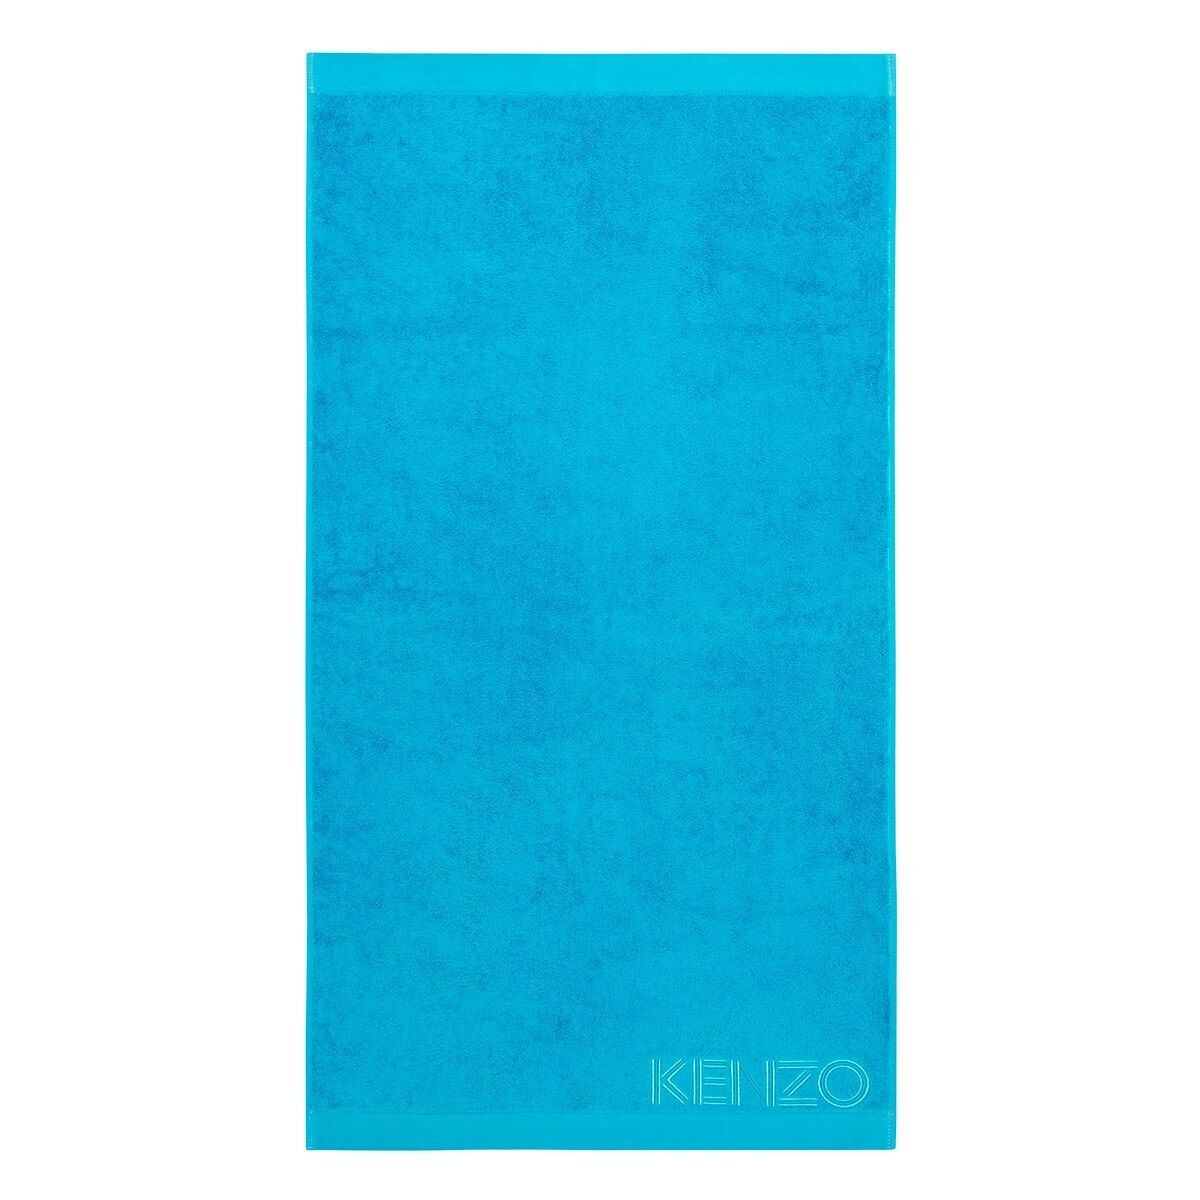 Kenzo Iconic Guest Towel, Cobalt - - - Set of 4 a79826